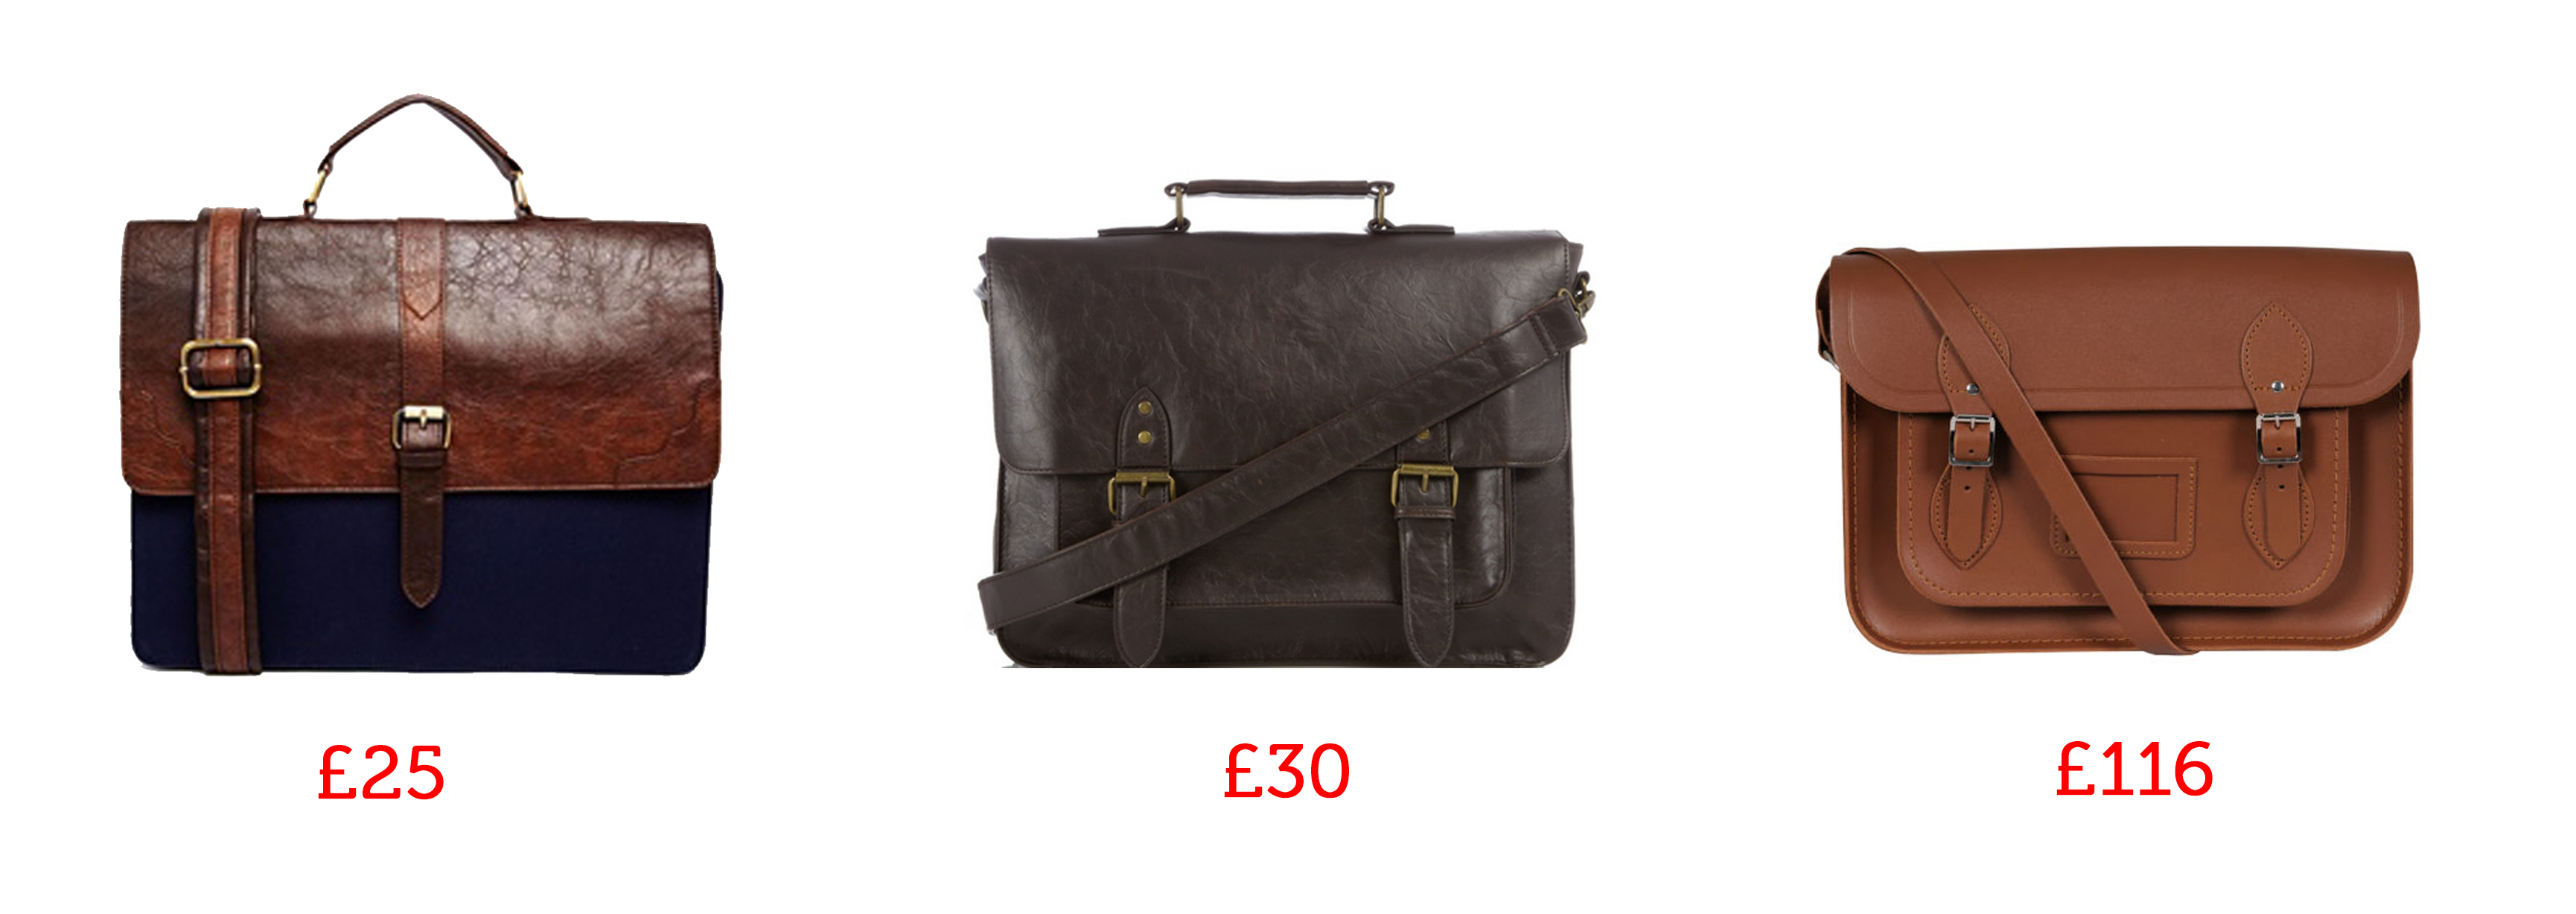 satchel bags cambridge satchel debenhams asos man bag